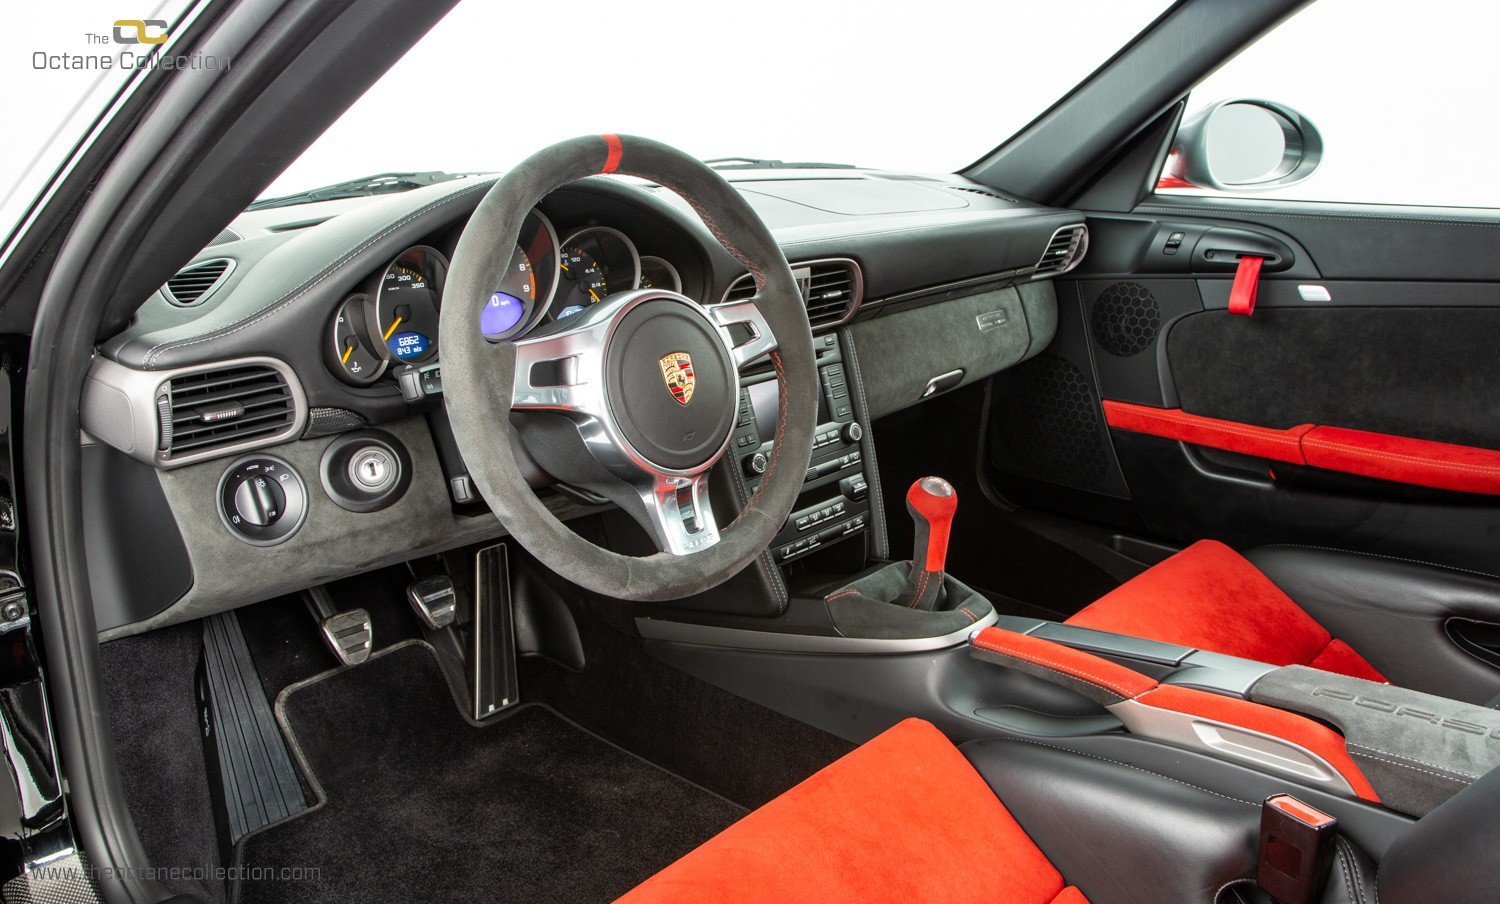 2011 PORSCHE 911 (997) GT3 RS 4.0 // C00 LHD GERMAN SUPPLIED For Sale (picture 4 of 6)